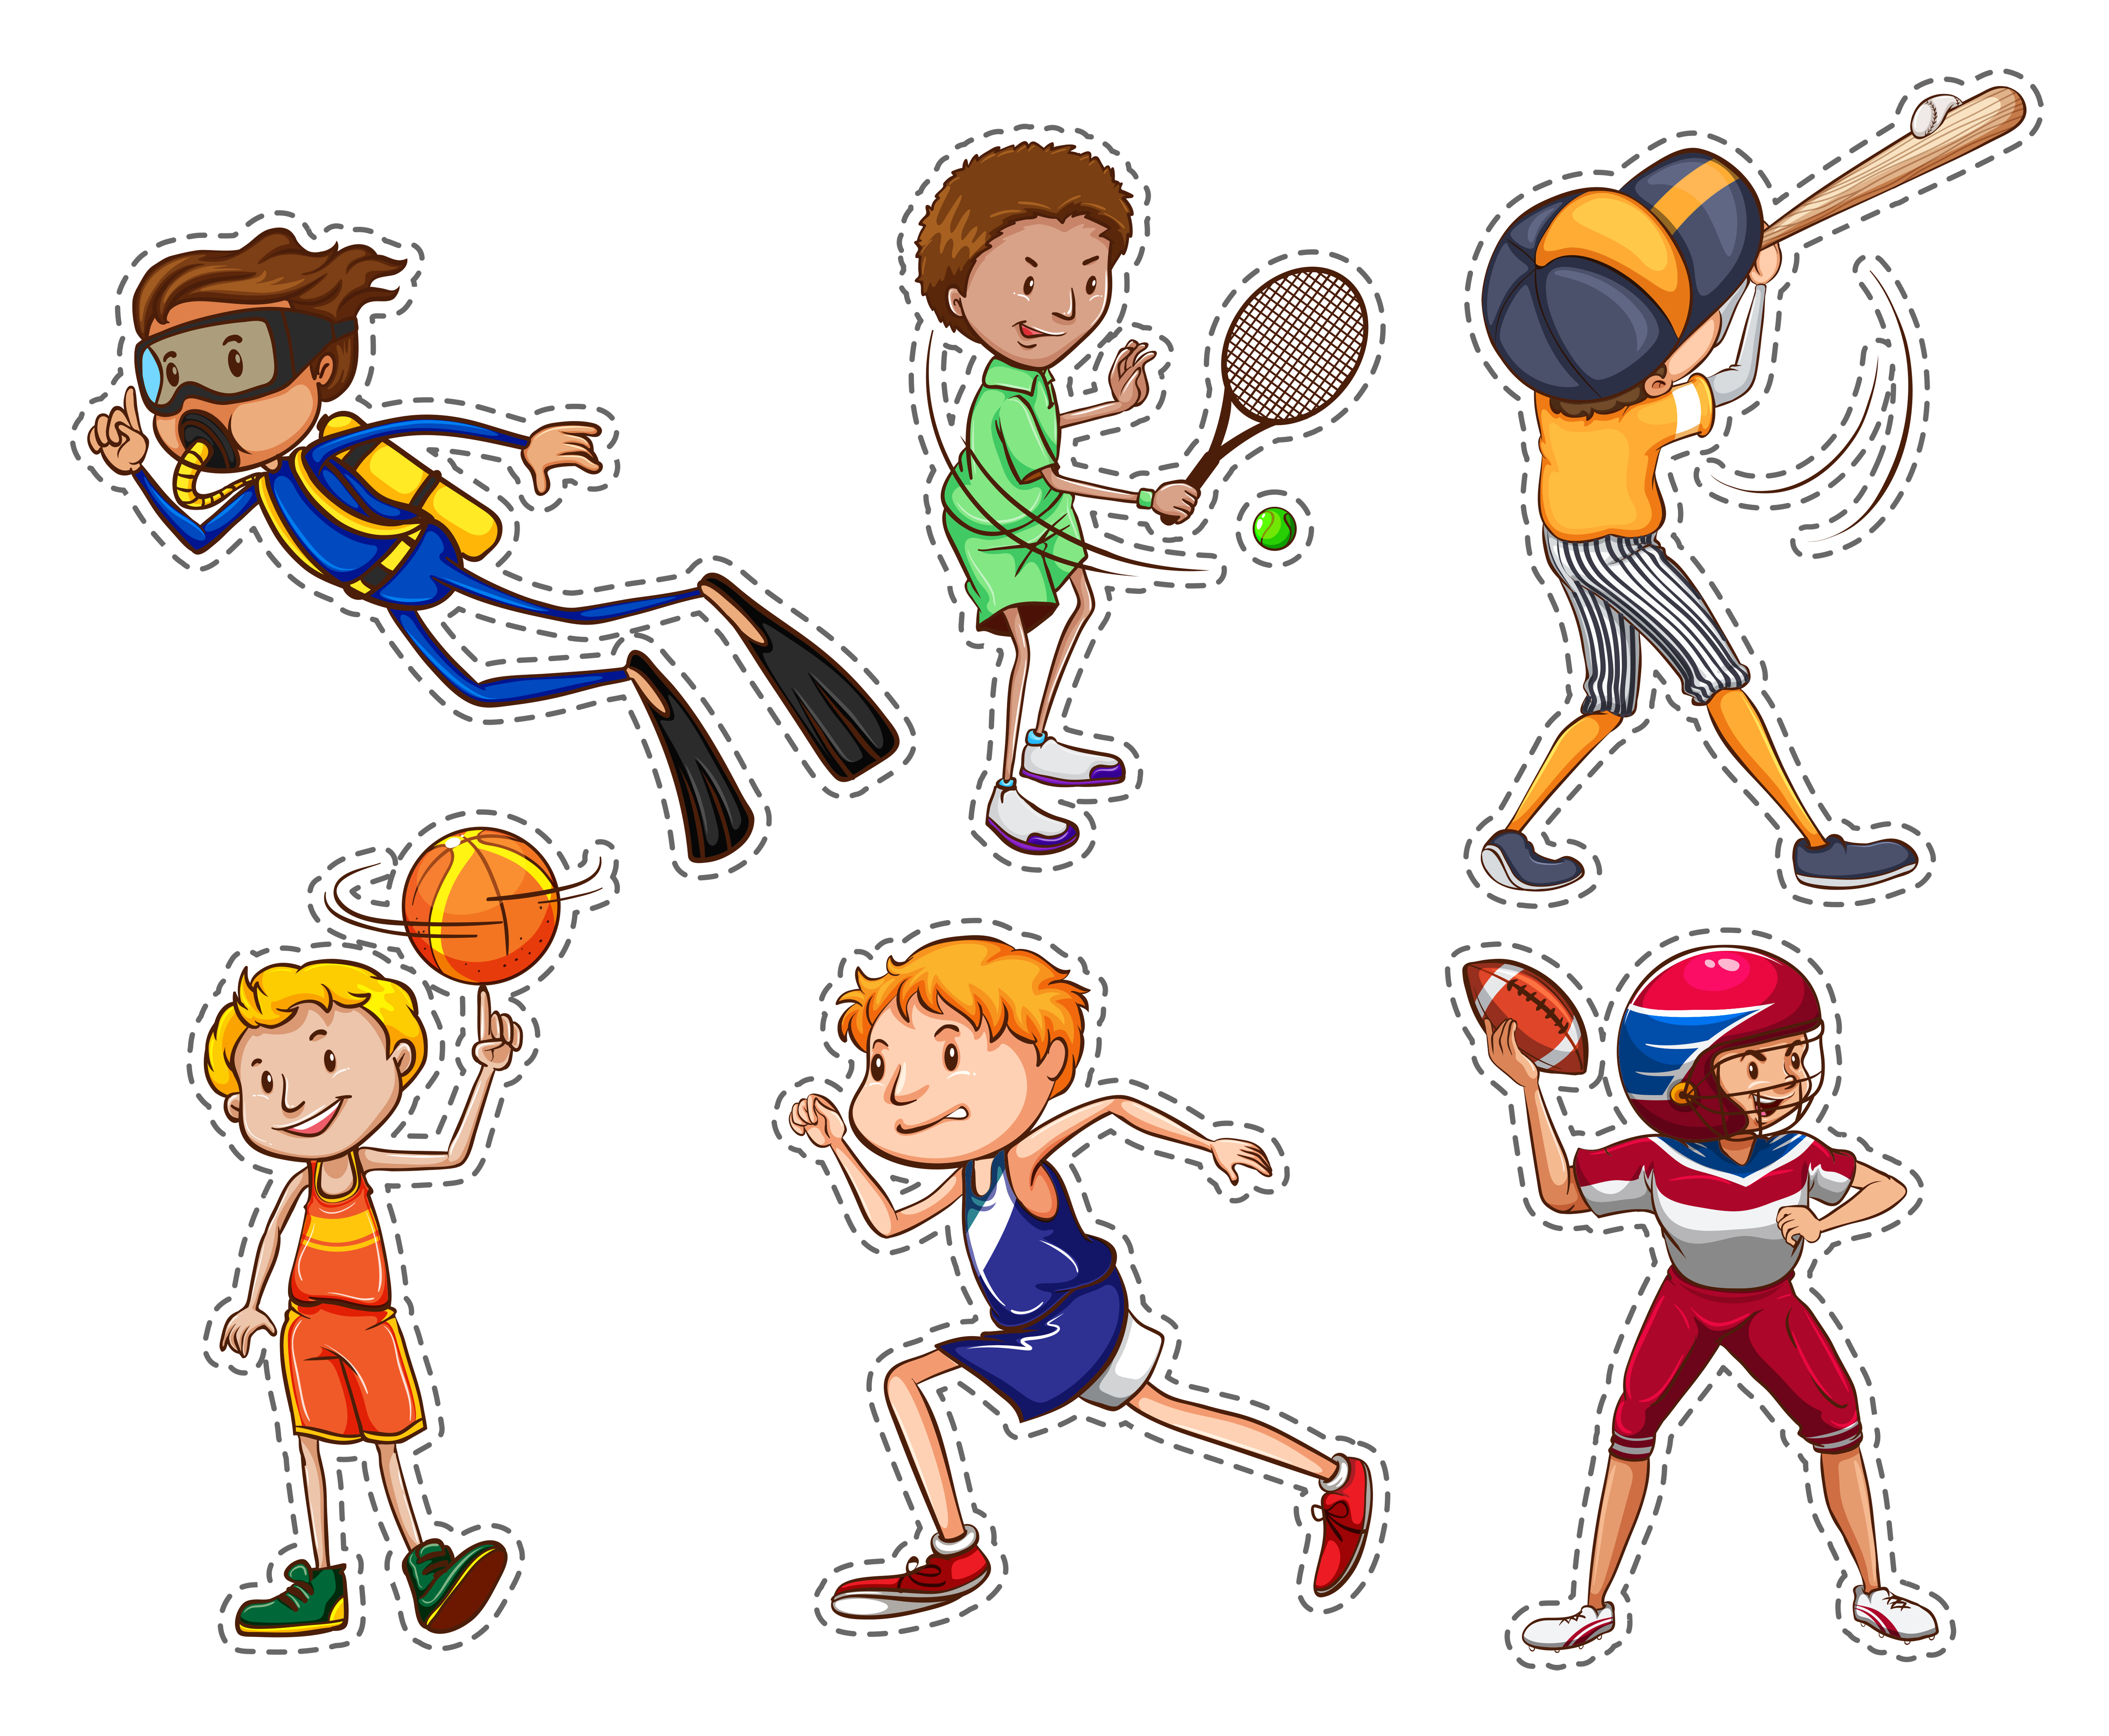 sports doing different illustration playing cartoon cute children vector happy motifs human collection boy clipart kinds shutterstock non